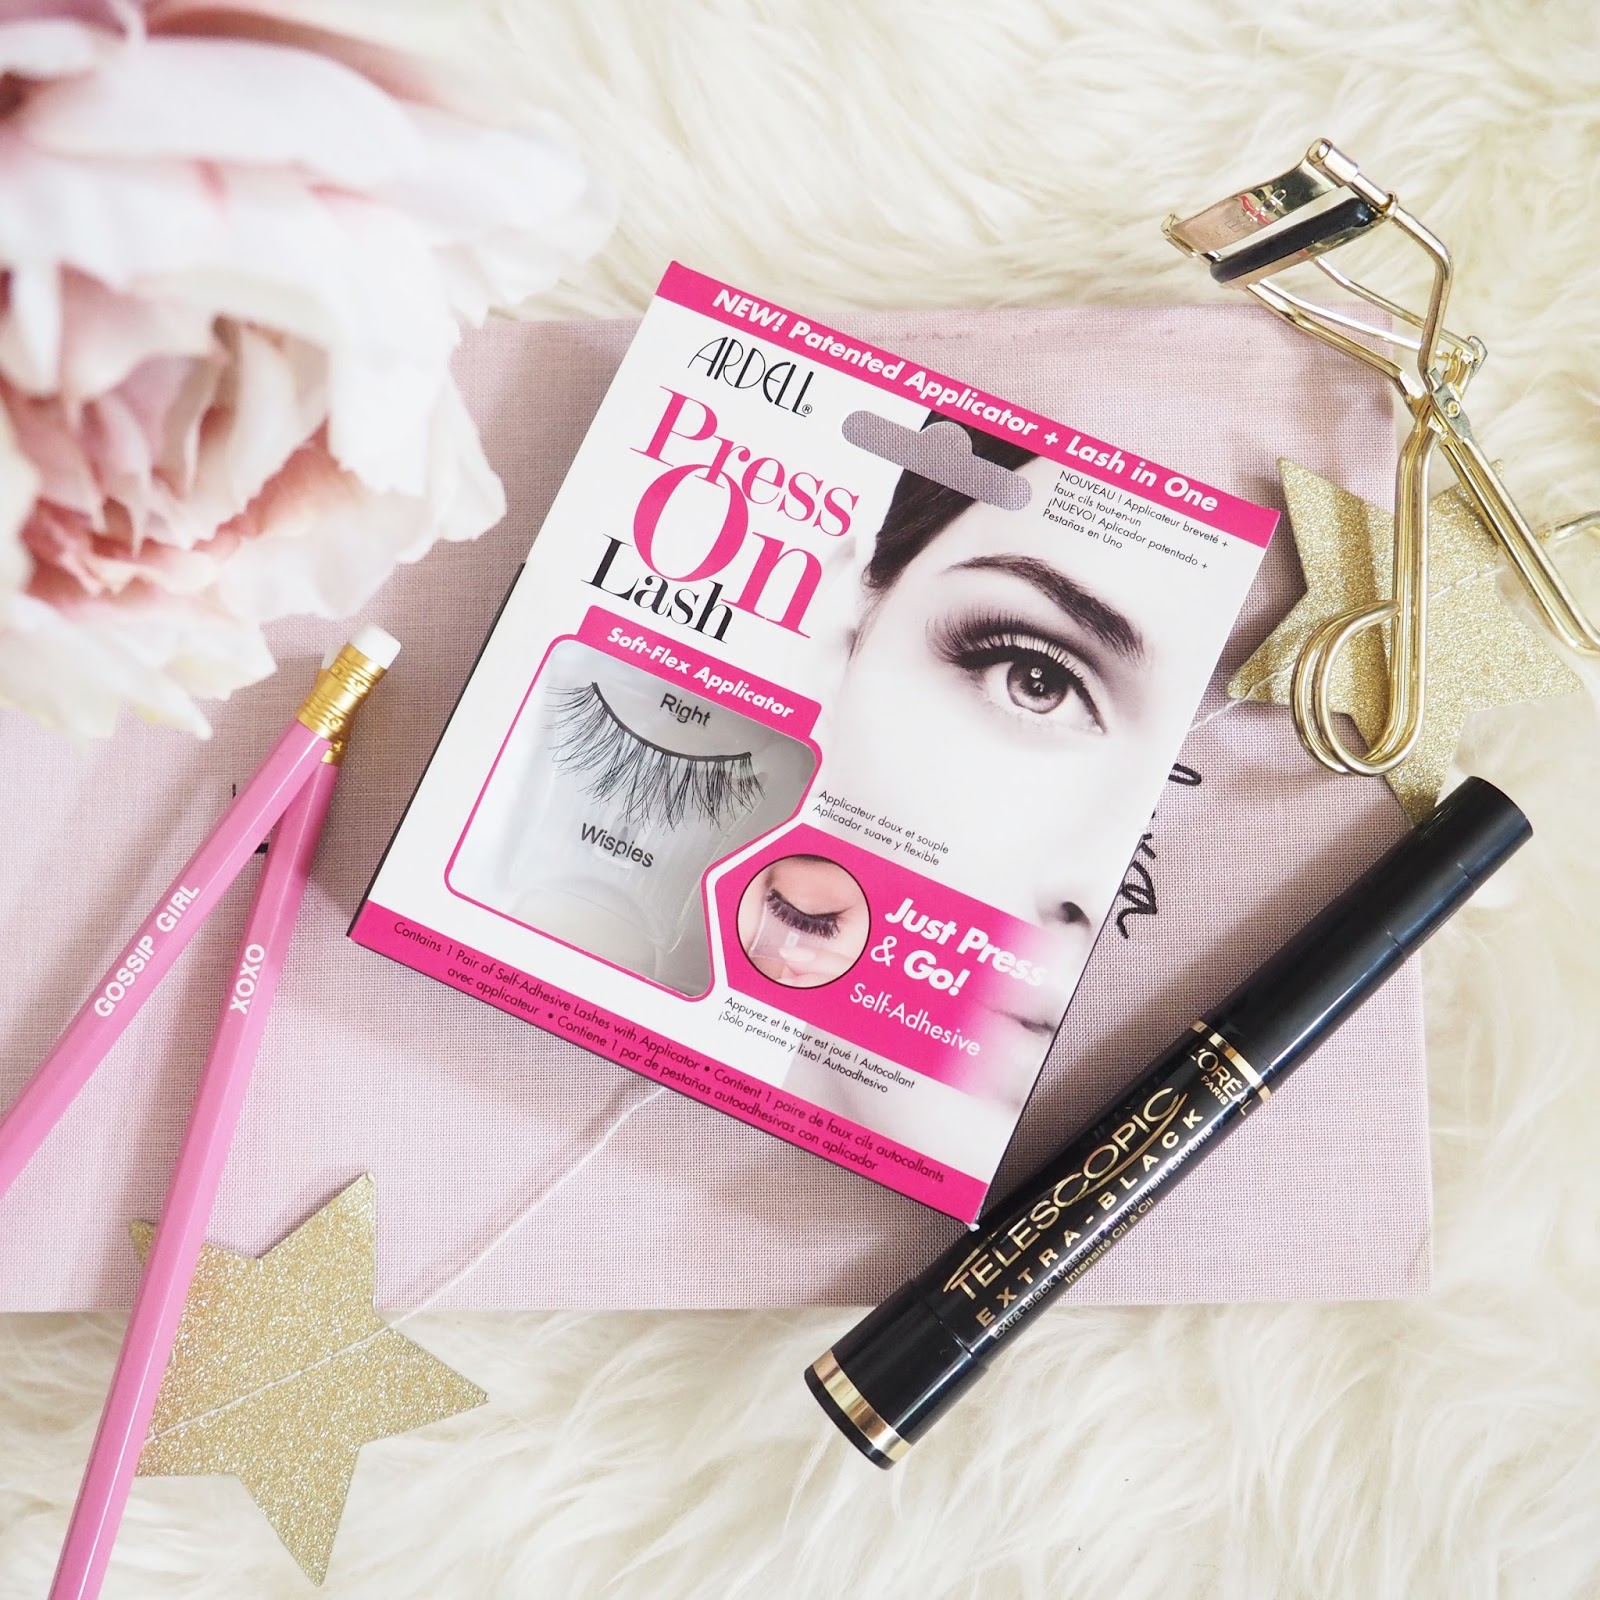 ardell wispie lashes uk, myfalseeyelashes review, Wardell lash review, stick on lash review, blogger mail, Easy + Cheap Way For Natural Looking Lashes, false eyelash help, natural looking lashes